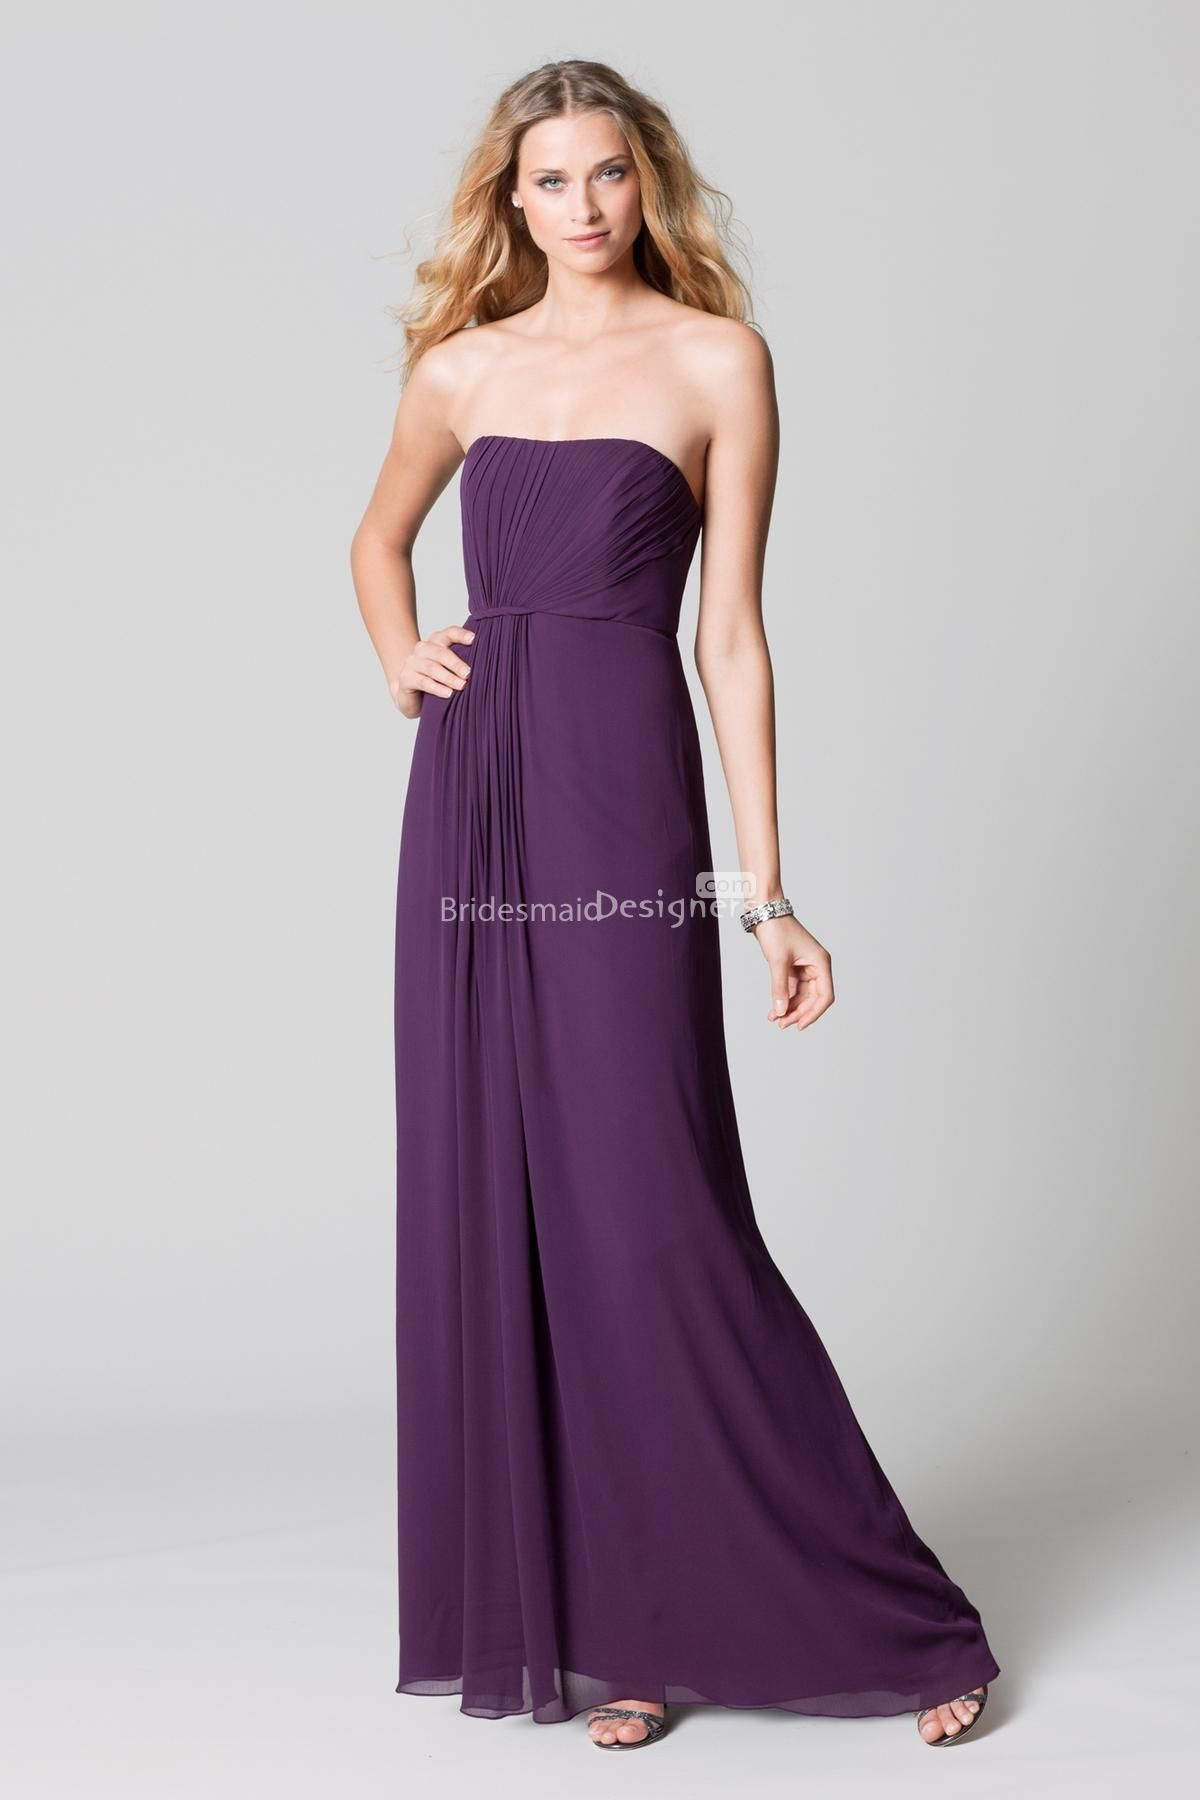 10  images about Dark Purple Bridesmaids Dresses on Pinterest ...